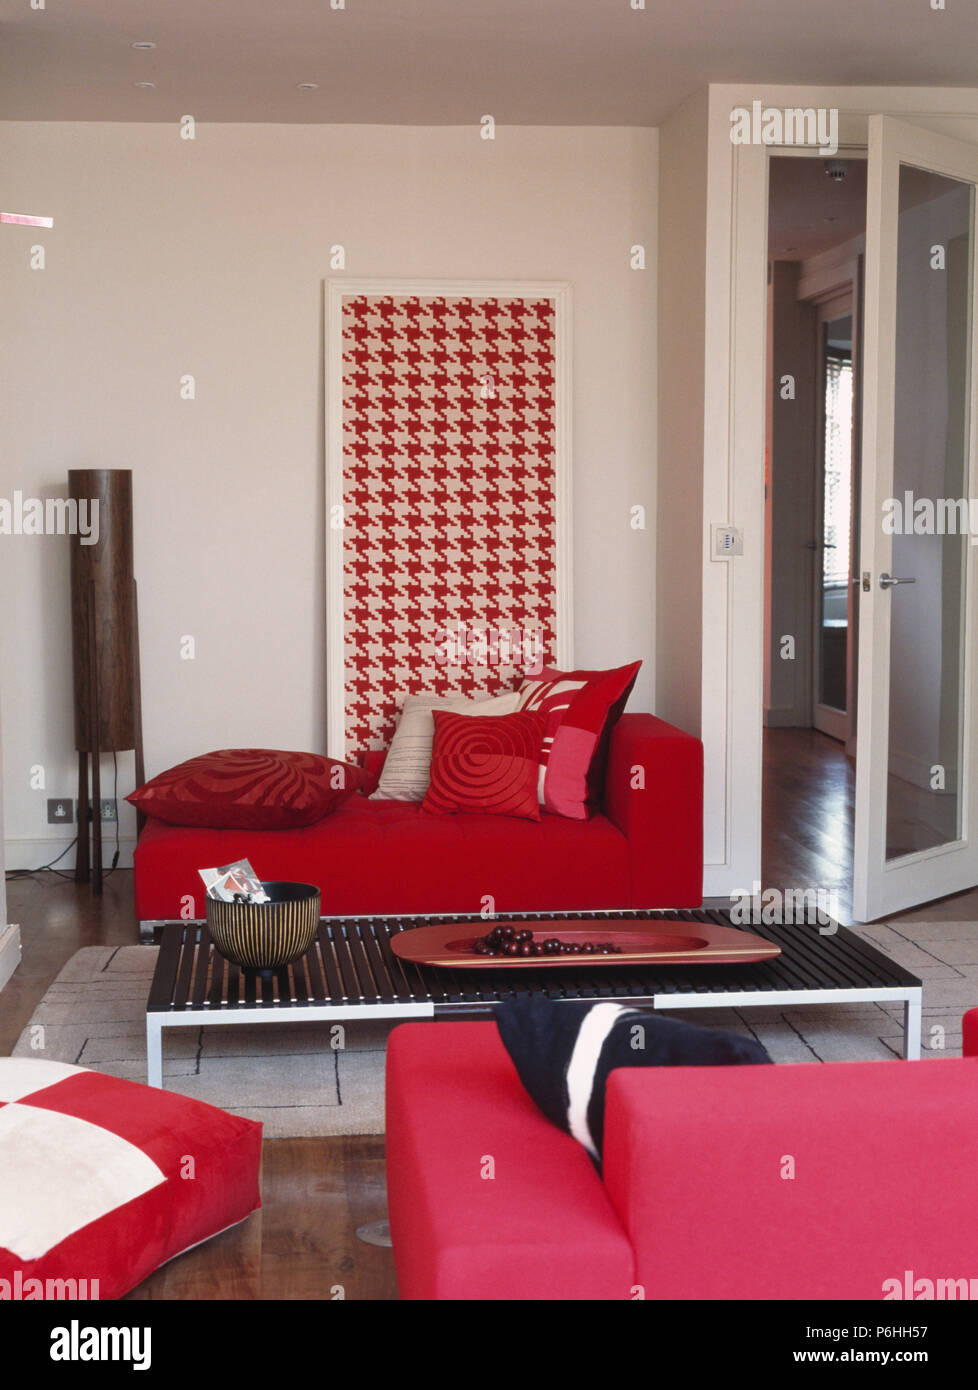 Patterned red cushions on bright red sofa in front of large red+ ...